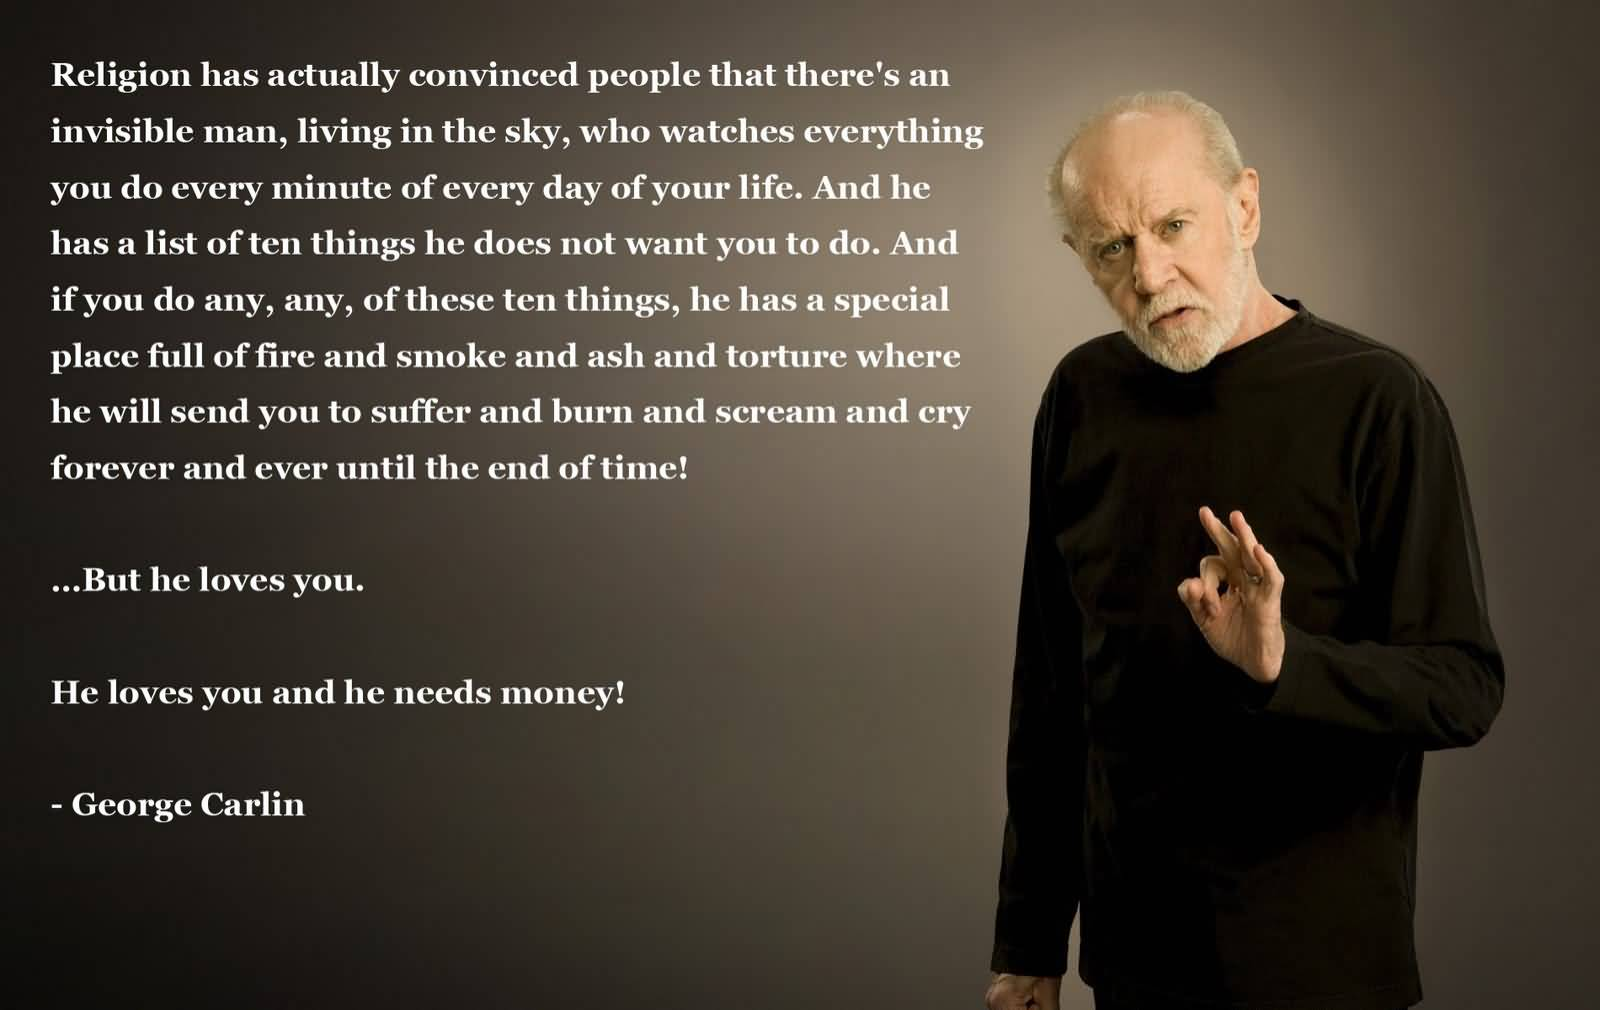 Religion has actually convinced people that there's an invisible man living in the sky who watches everything you do, every minute of every day. And the ... George Carlin